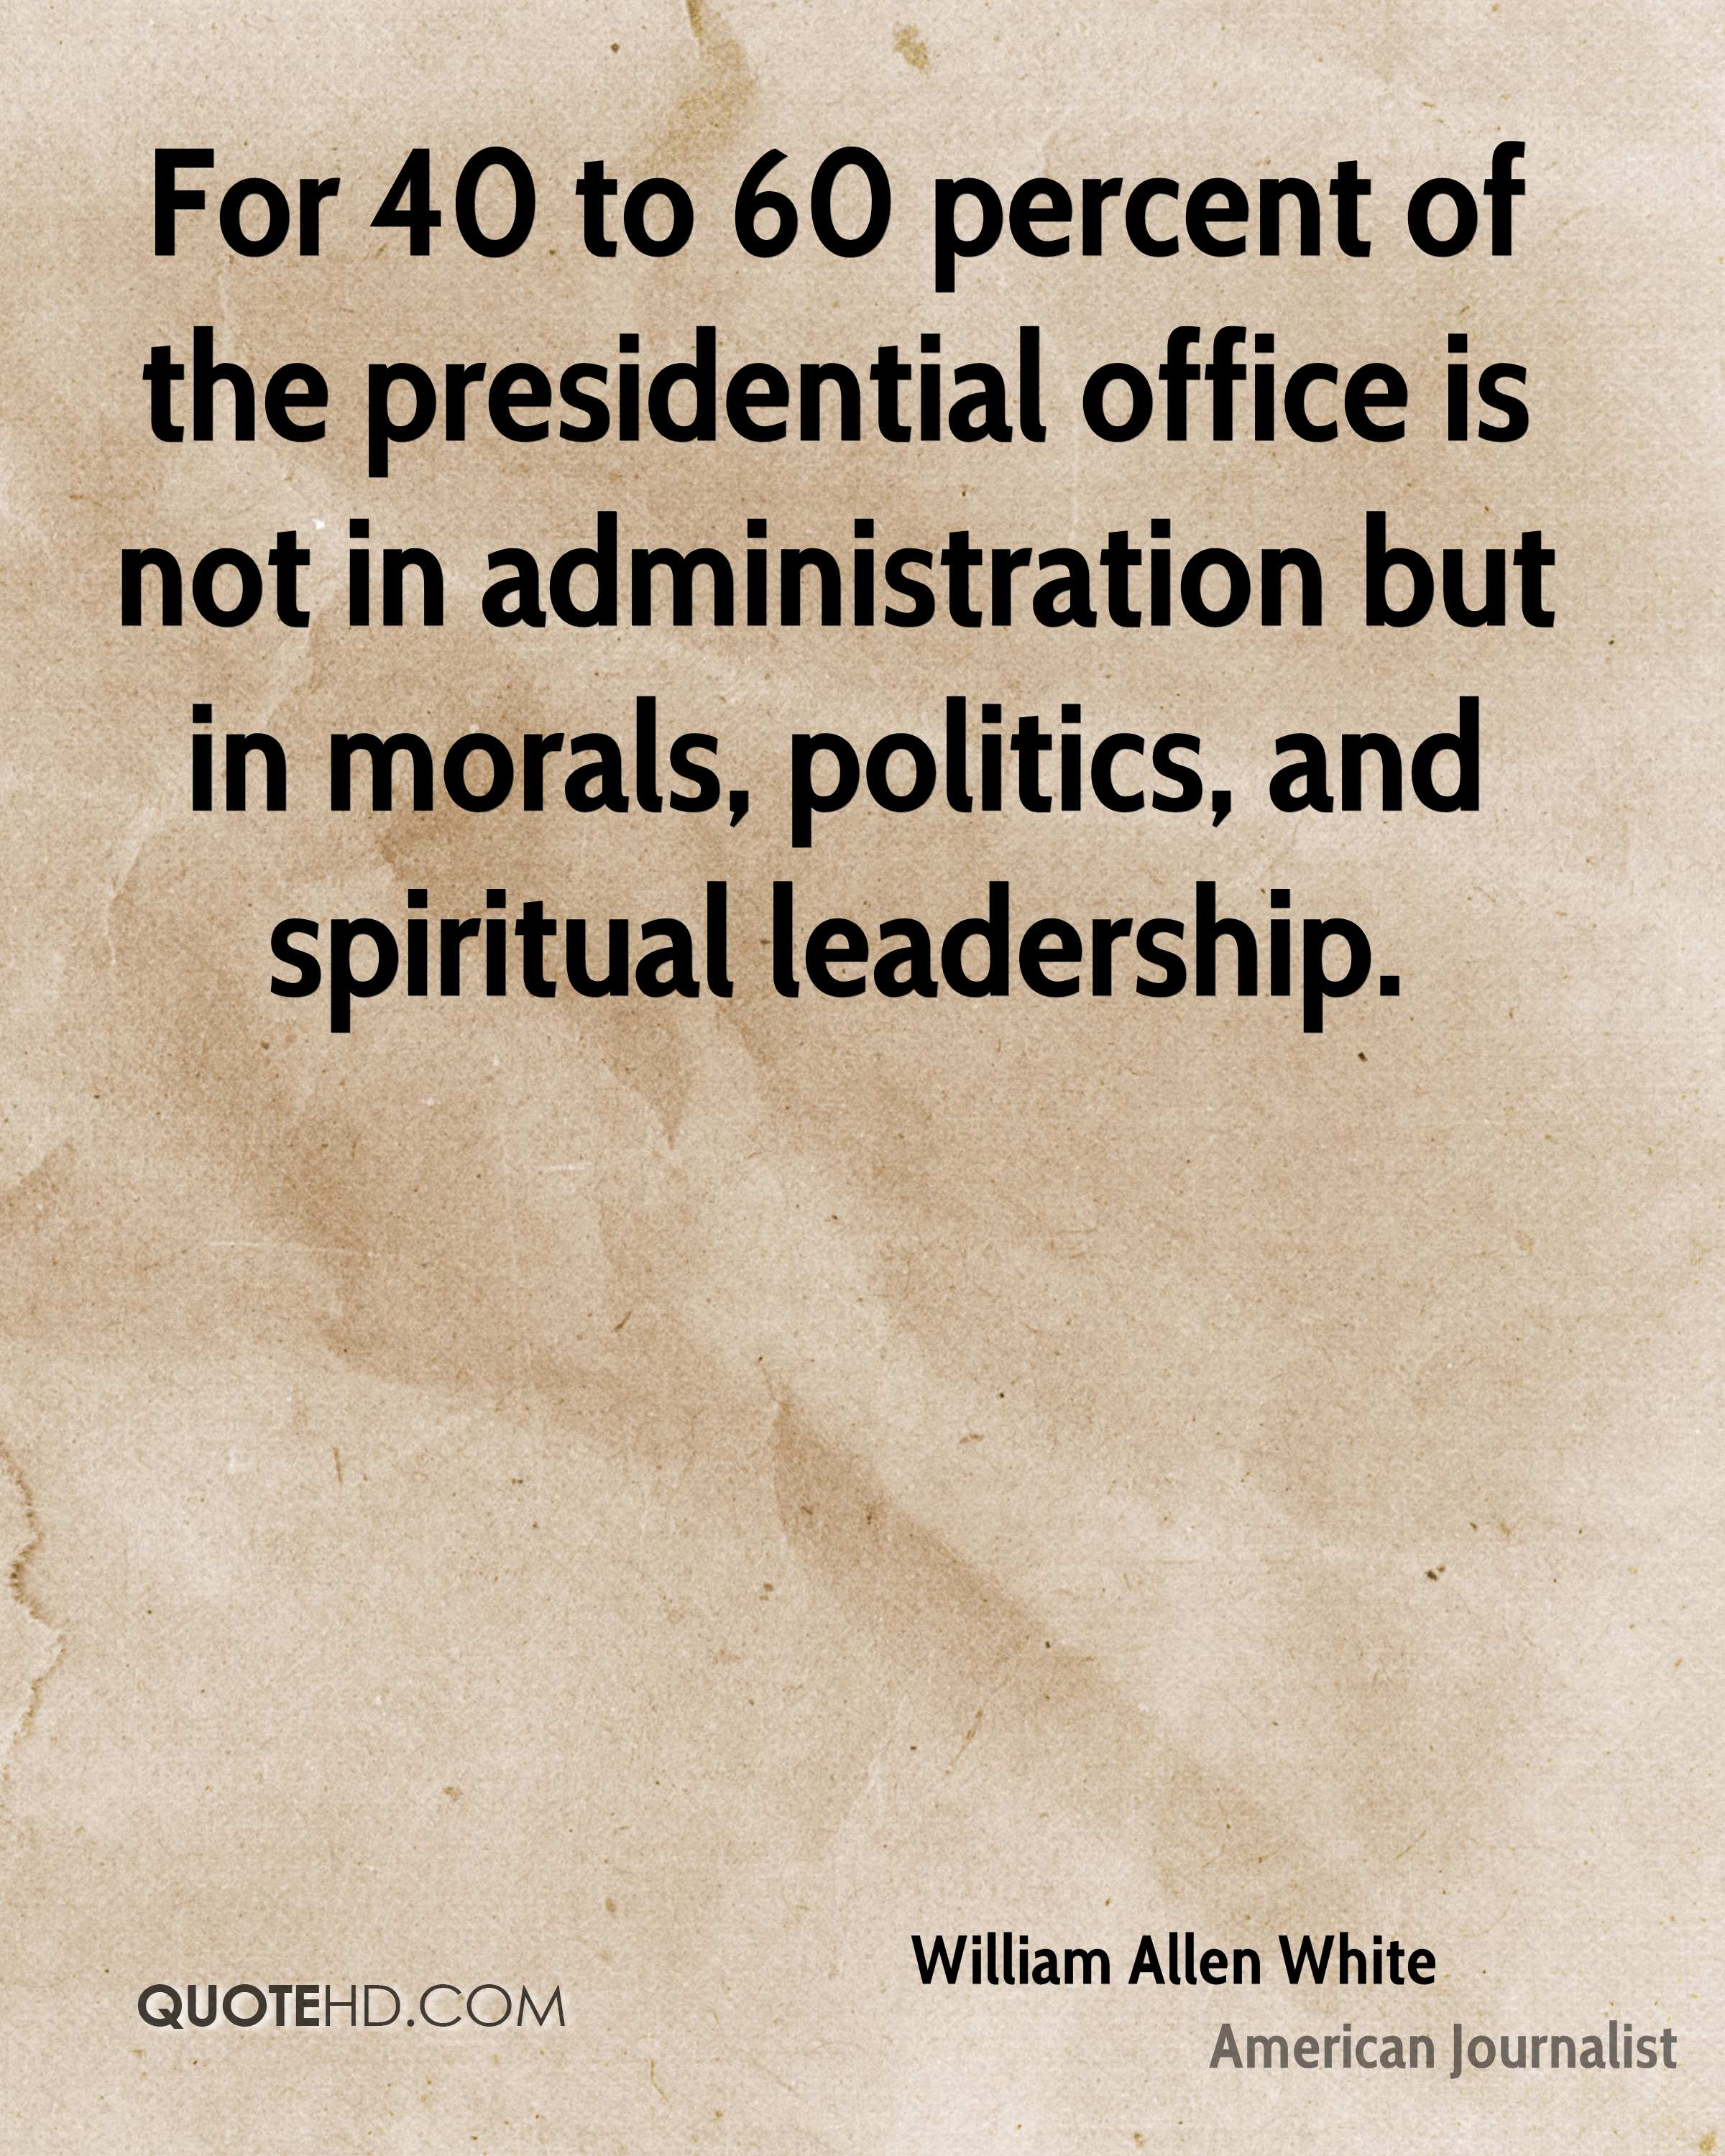 For 40 to 60 percent of the presidential office is not in administration but in morals, politics, and spiritual leadership.